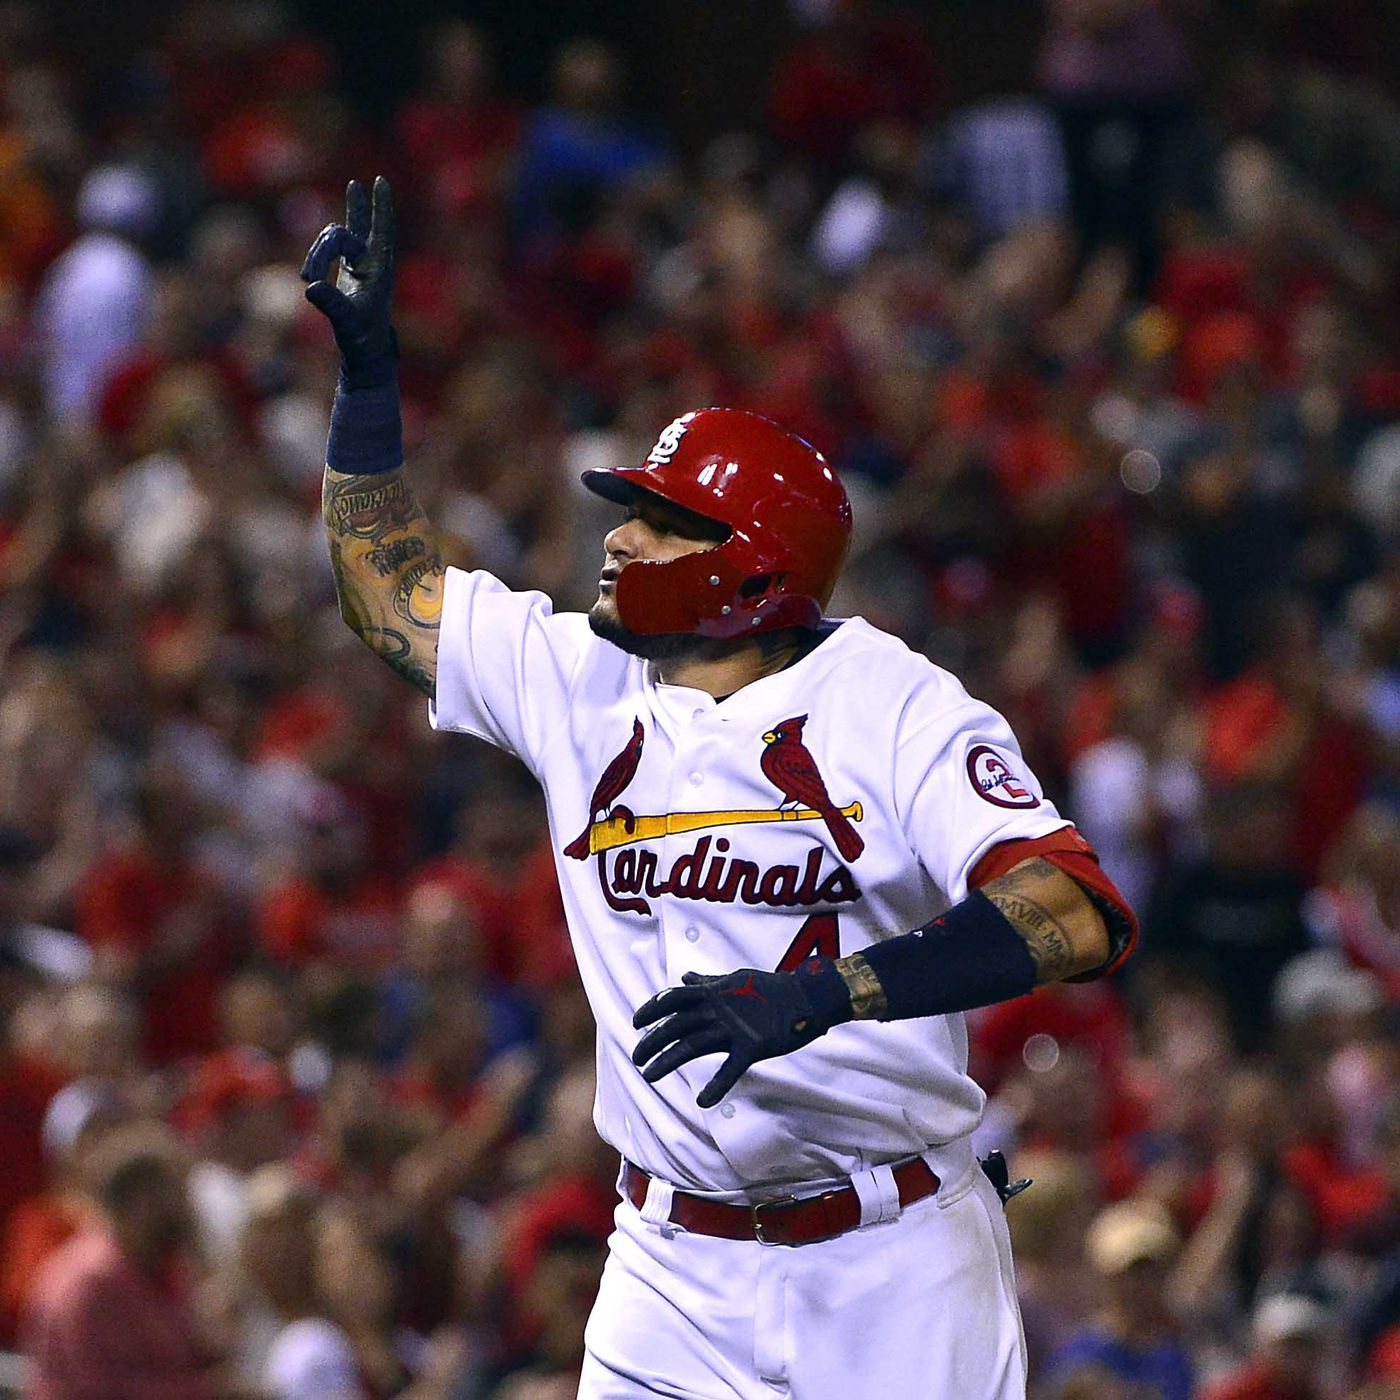 finest selection 1fa91 621d3 Yadier Molina wins 2018 Roberto Clemente Award - A Hunt and ...